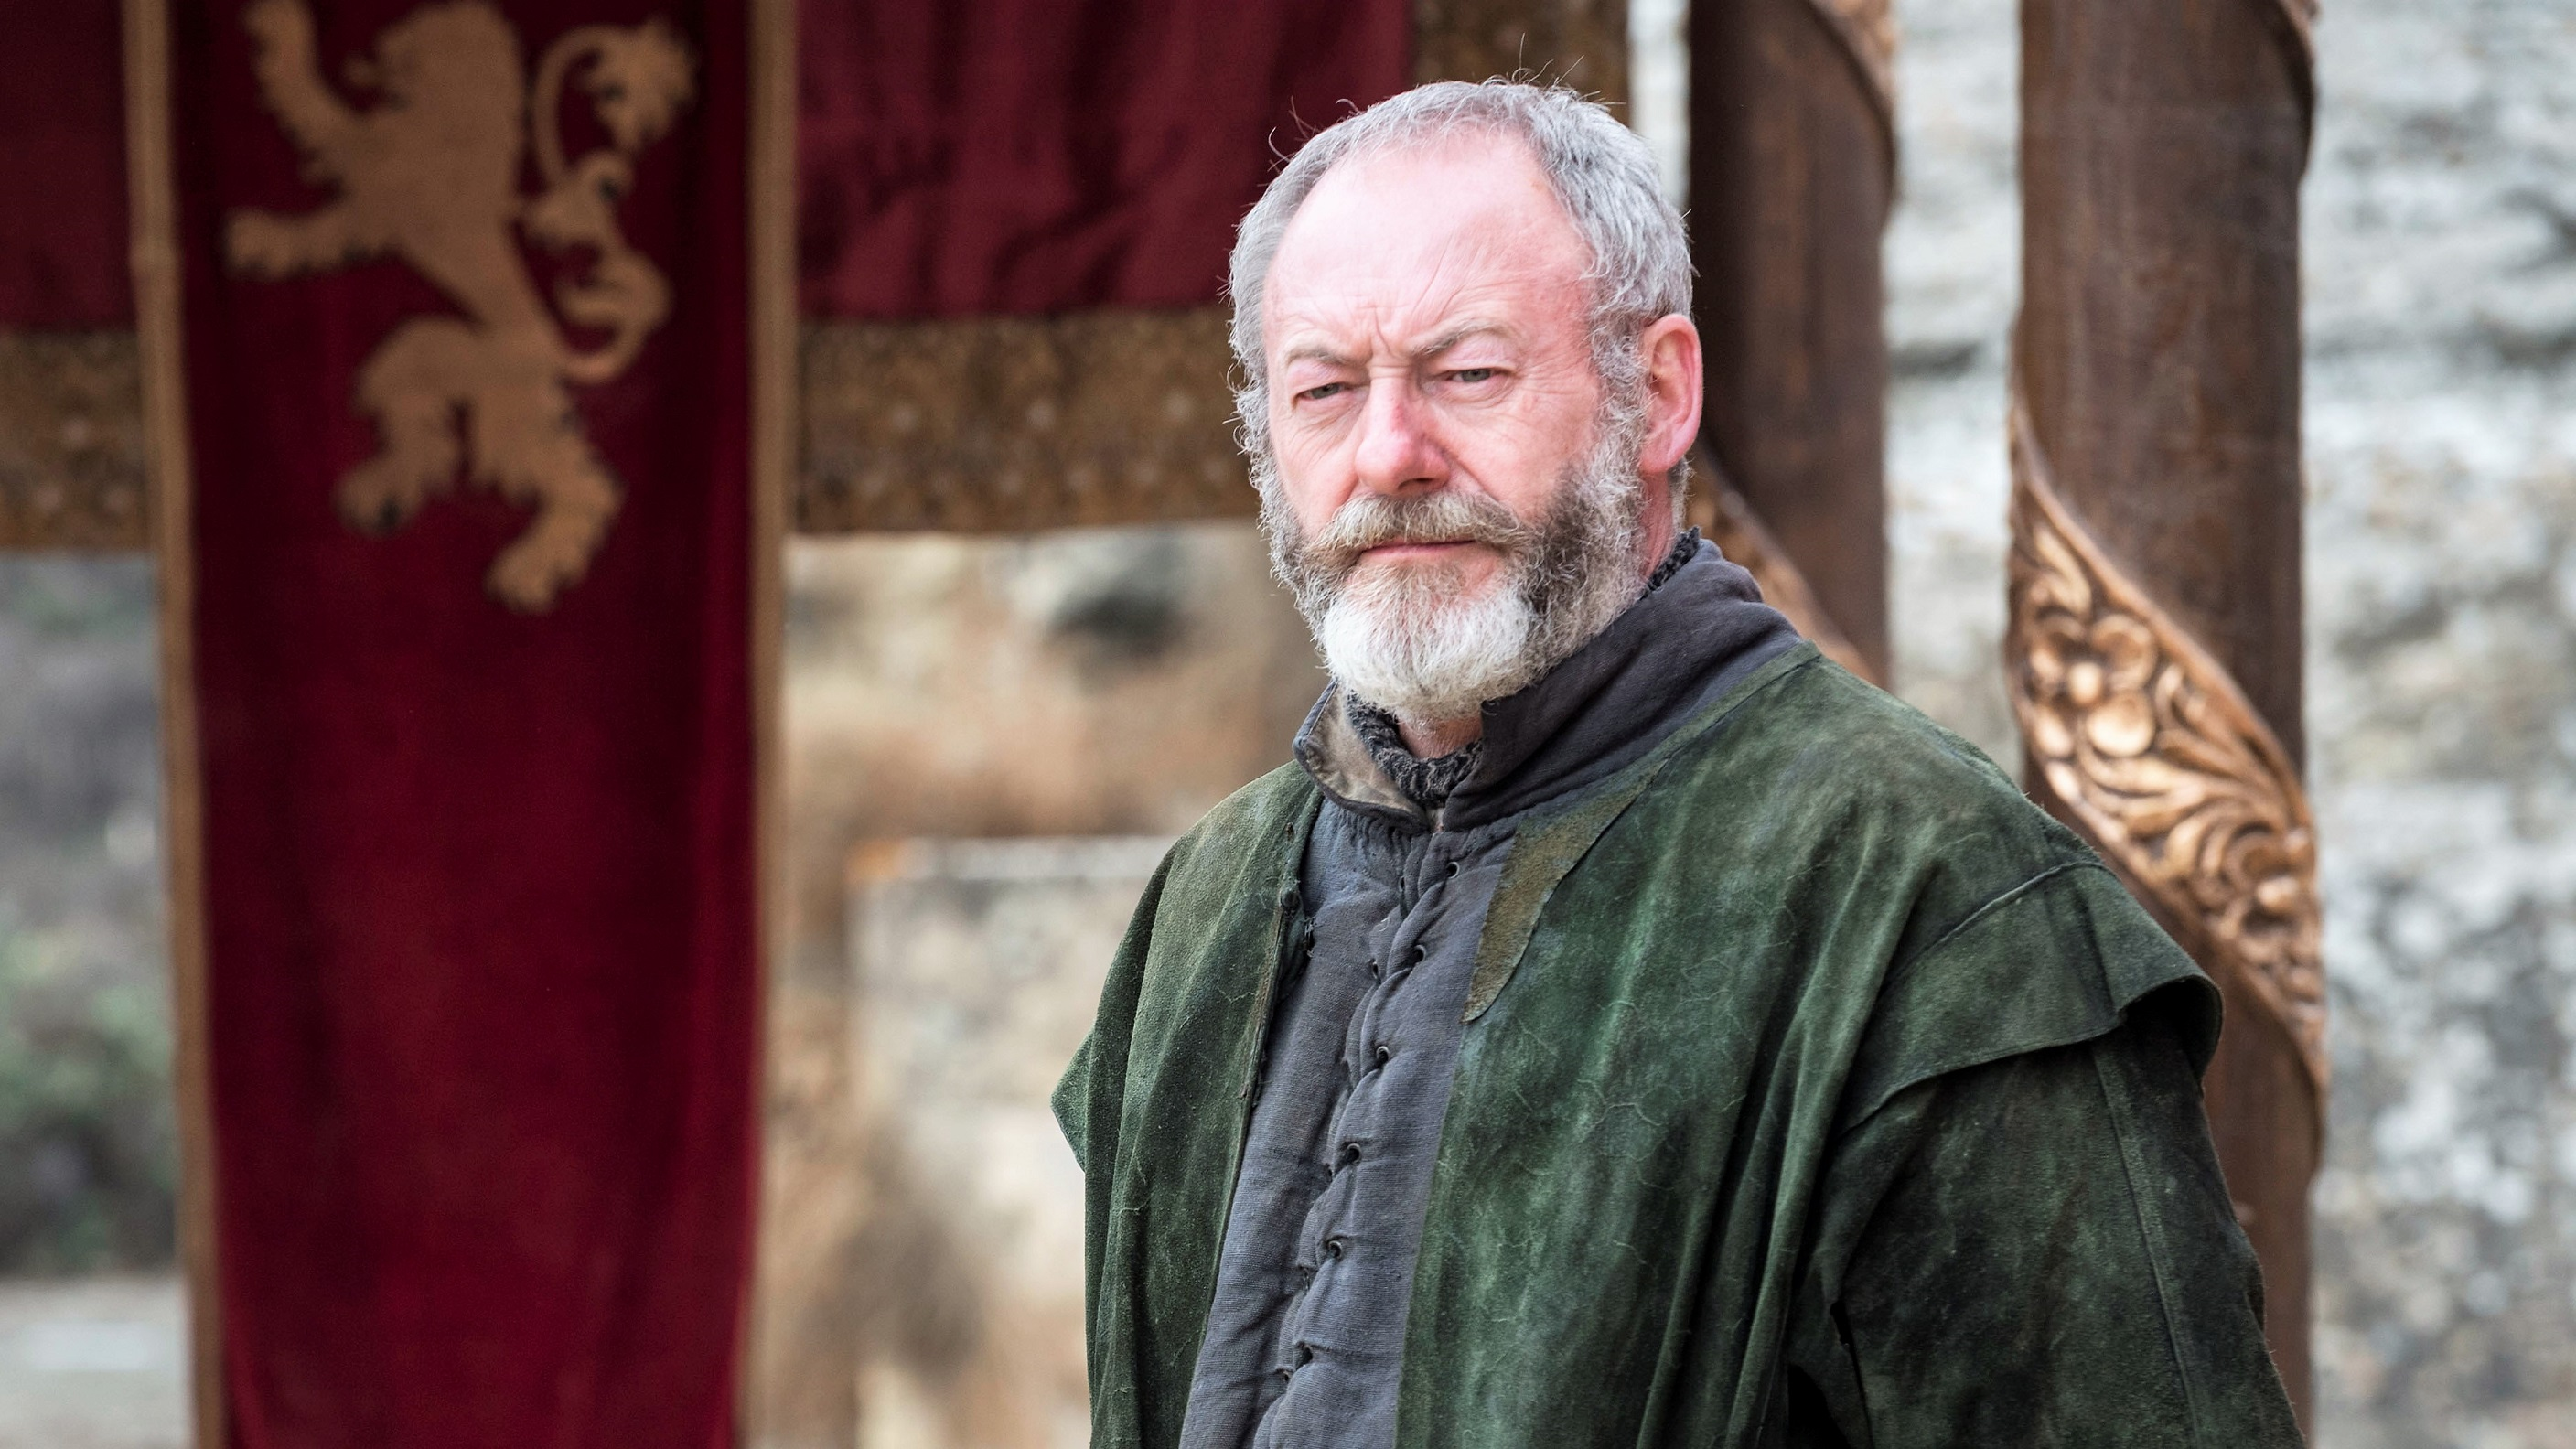 Having made it to the eighth season, Liam Cunningham (Davos Seaworth) hopes to make it all the way to final episode.